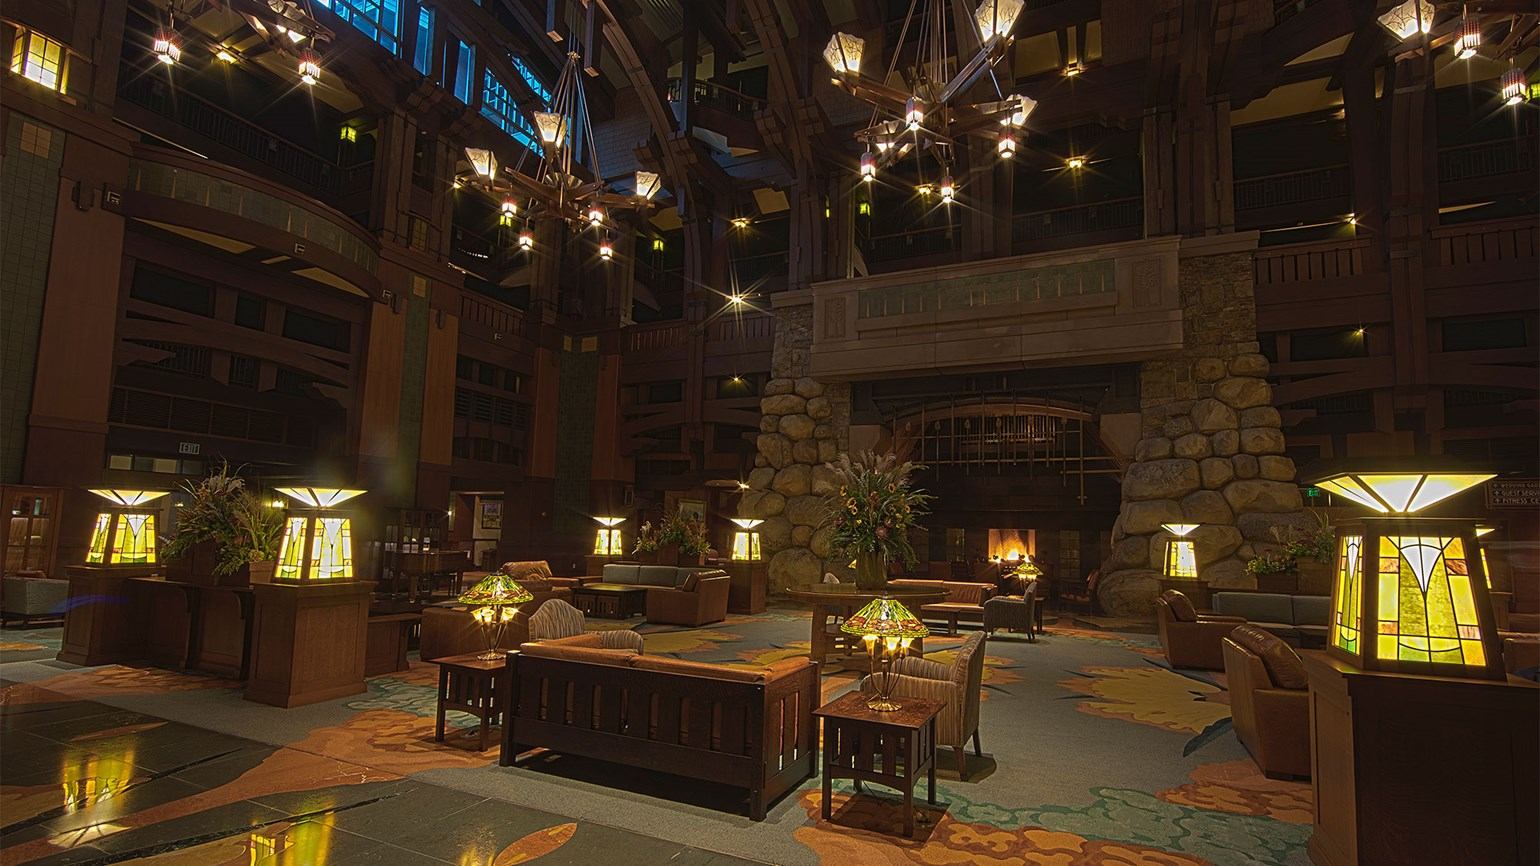 Renovation completed at Disney's Grand Californian